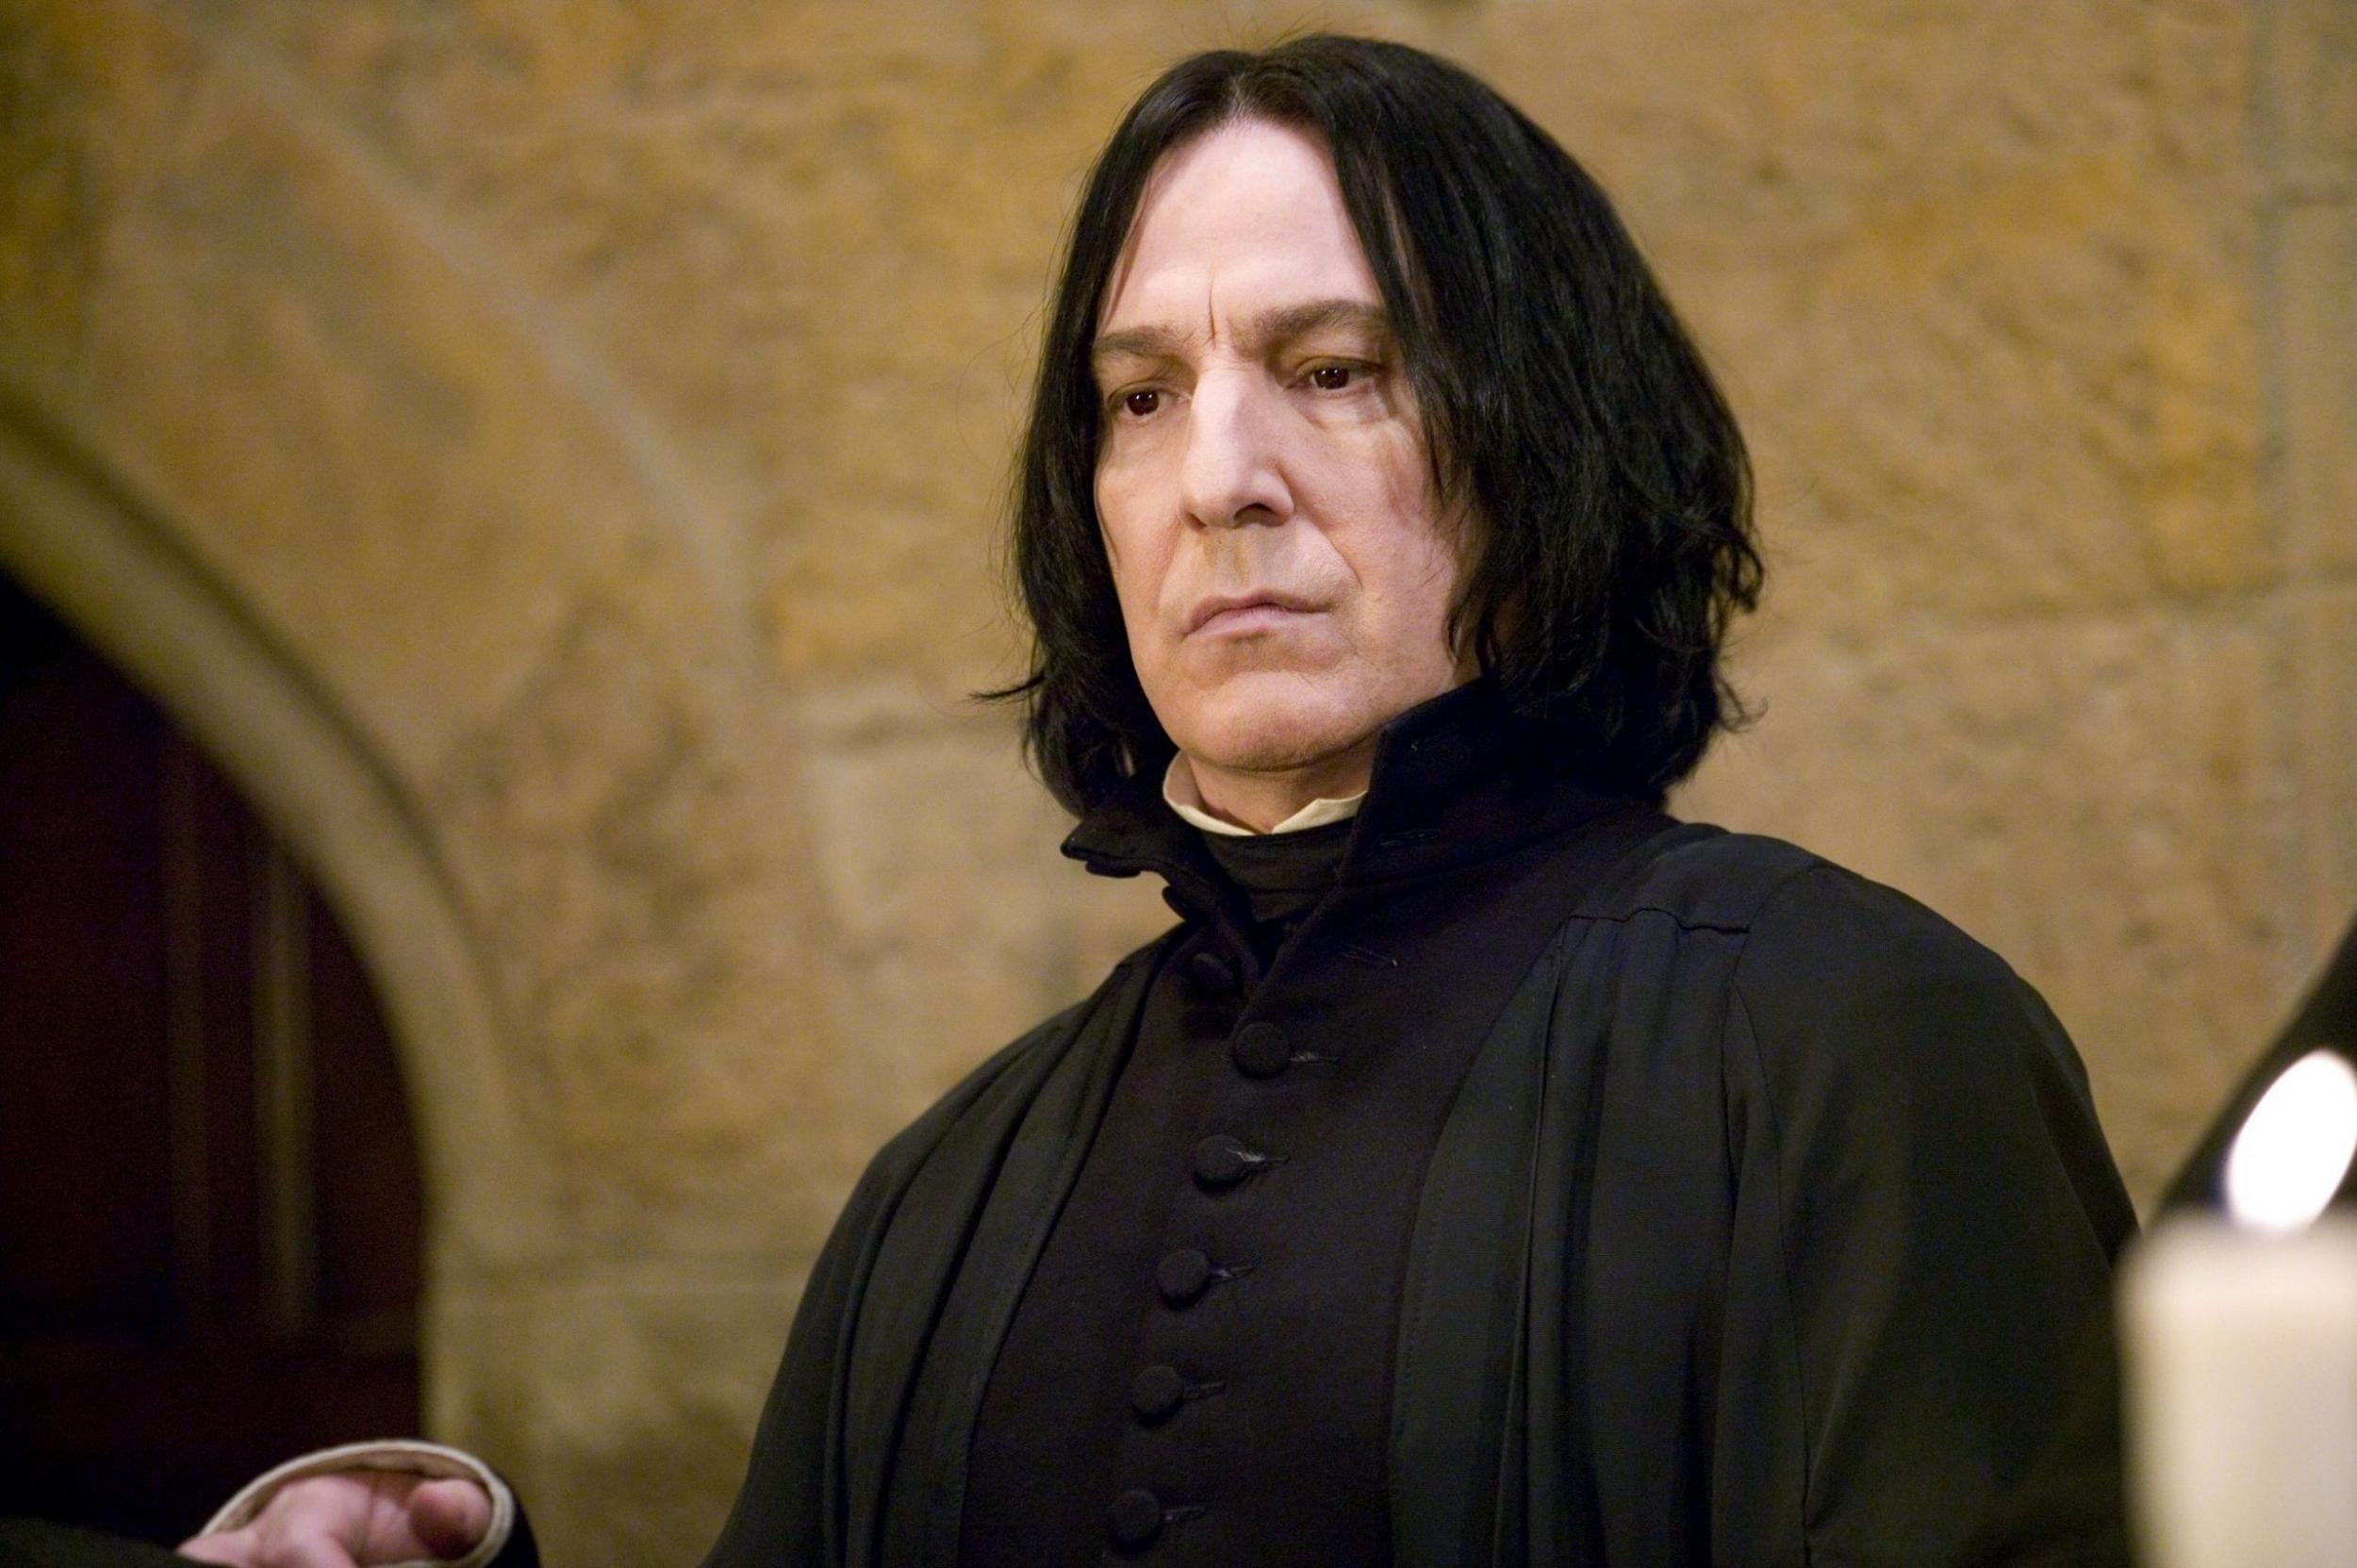 Alan Rickman dead: How the late actor hid Professor Snape's story arc from everyone | The Independent | The Independent